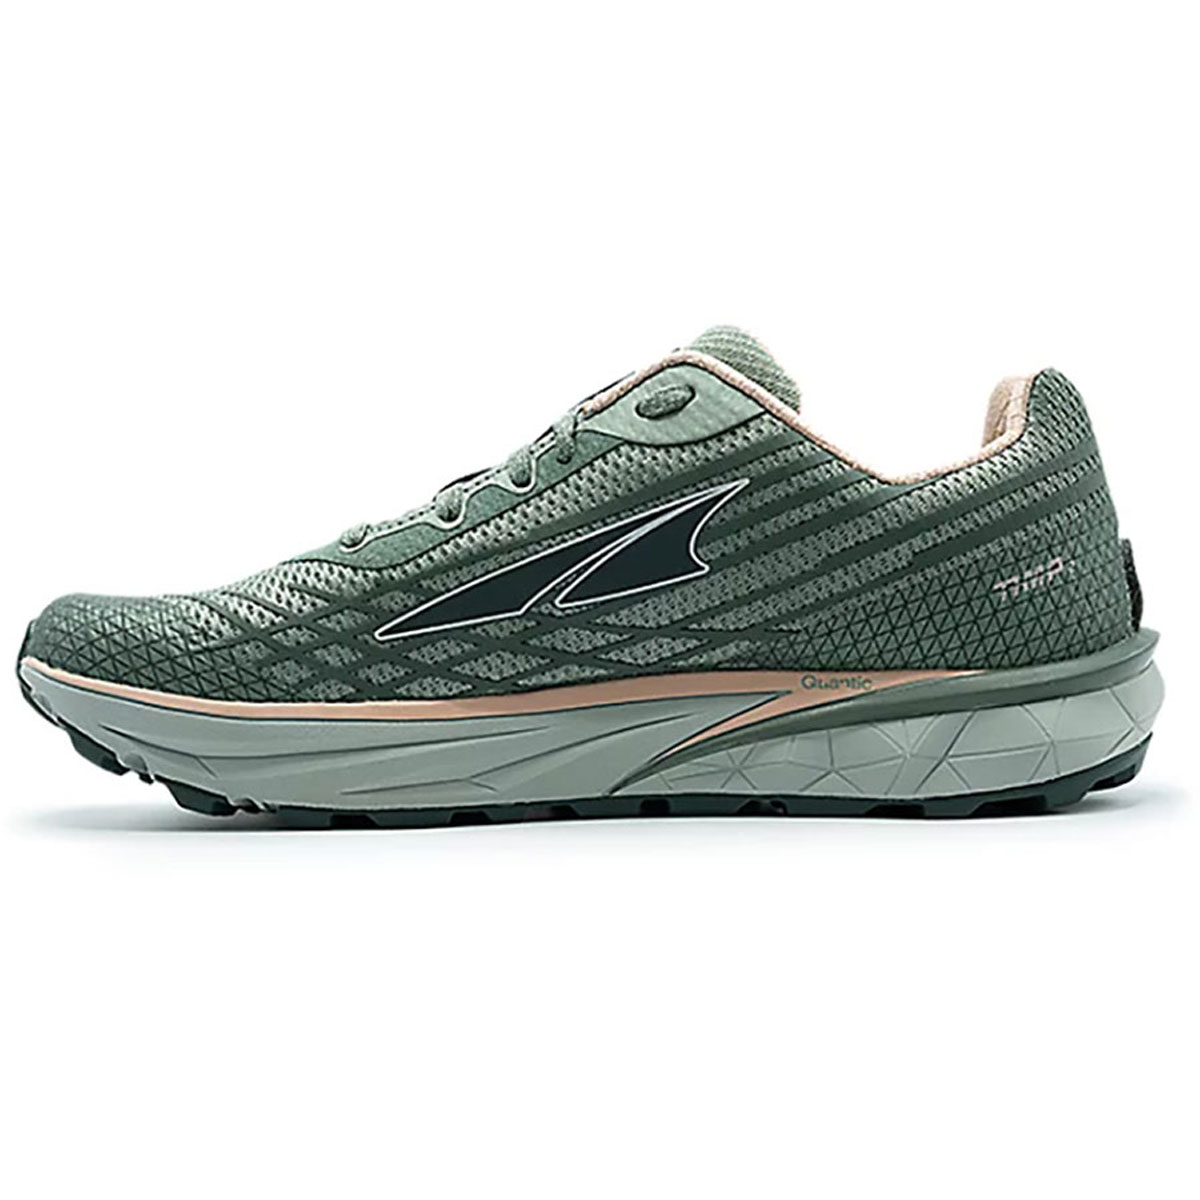 Women's Altra Timp 2 Running Shoe - Color: Lily Pad Green (Regular Width) - Size: 6.5, Lily Pad Green, large, image 2